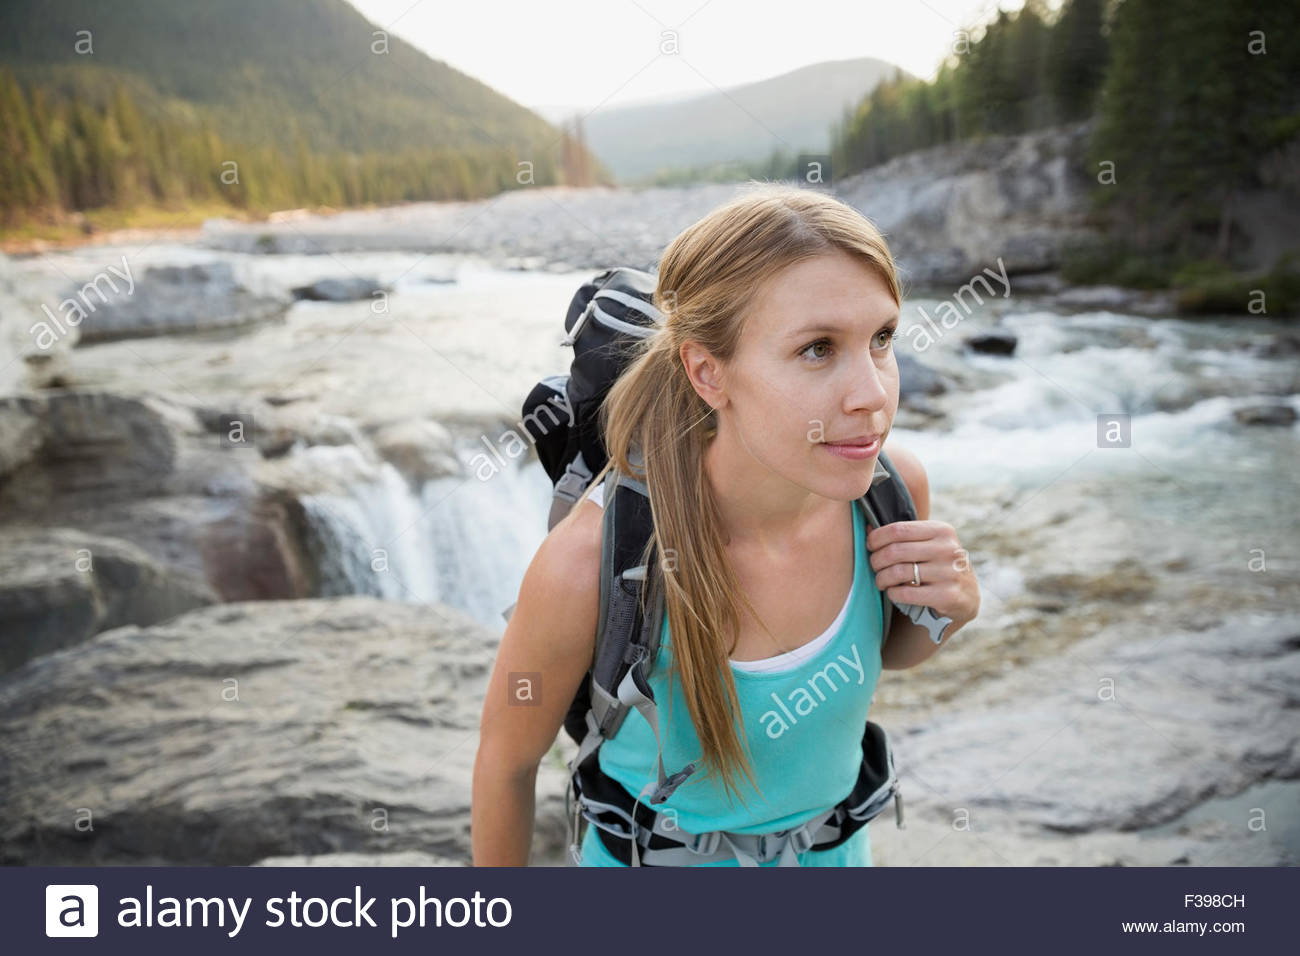 Female hiker with backpack hiking on craggy riverside - Stock Image